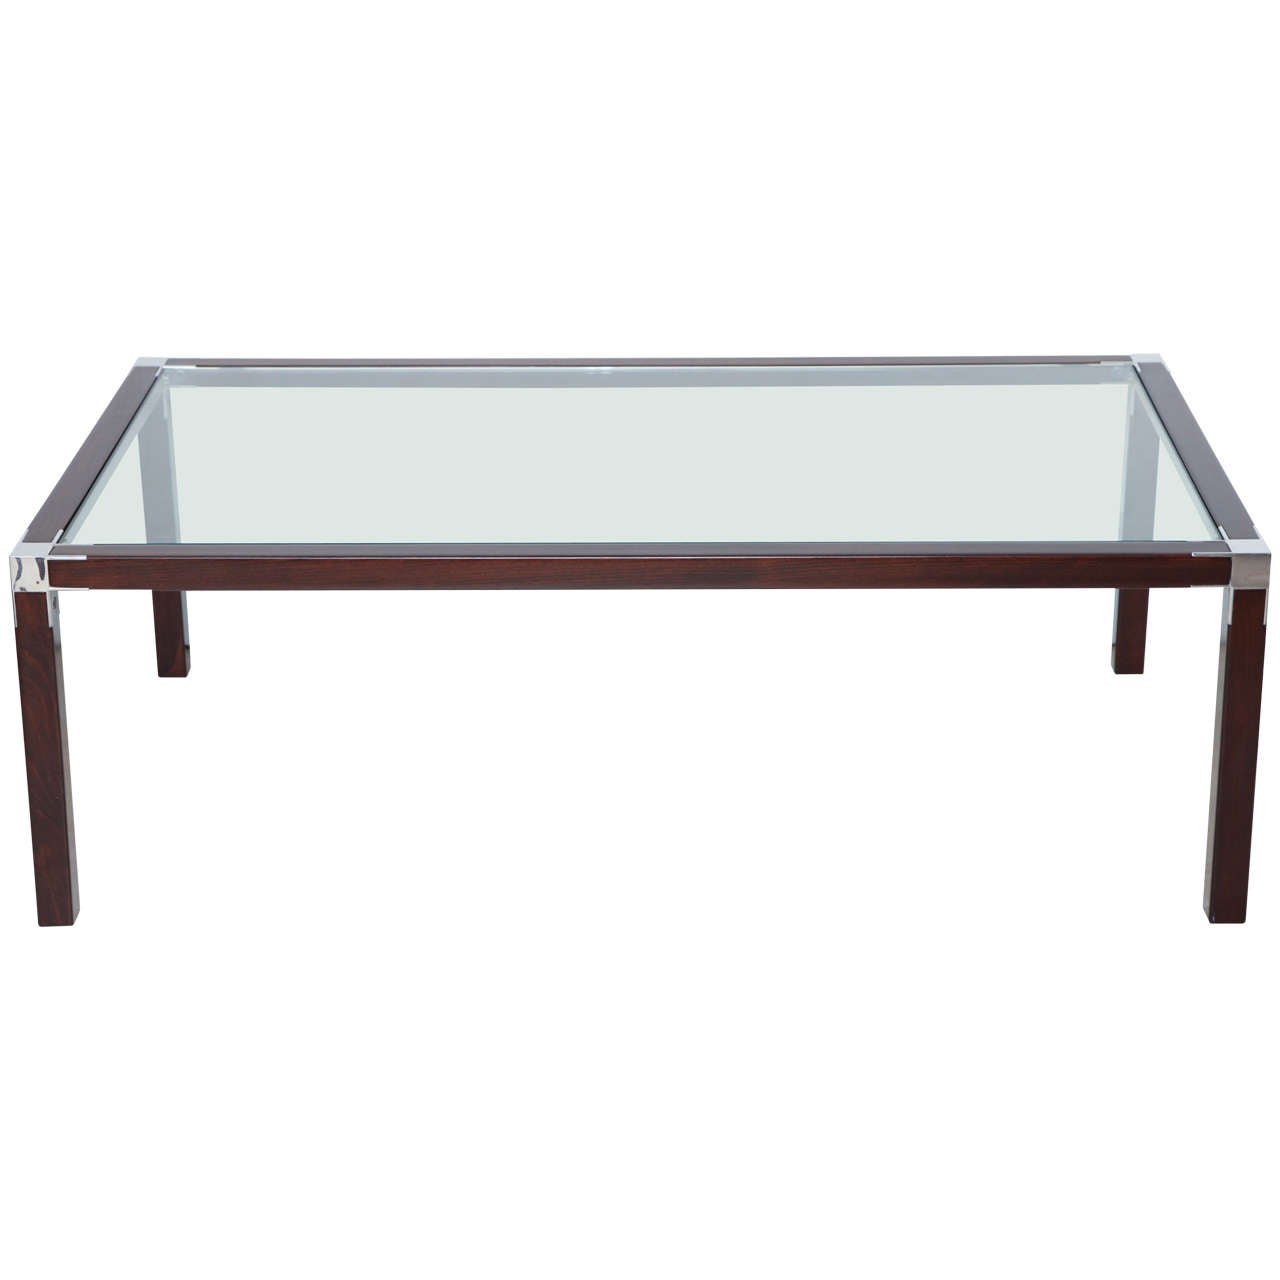 Mid century modern beech wood and nickel coffee table with smoked glass top at 1stdibs Wood coffee table glass top